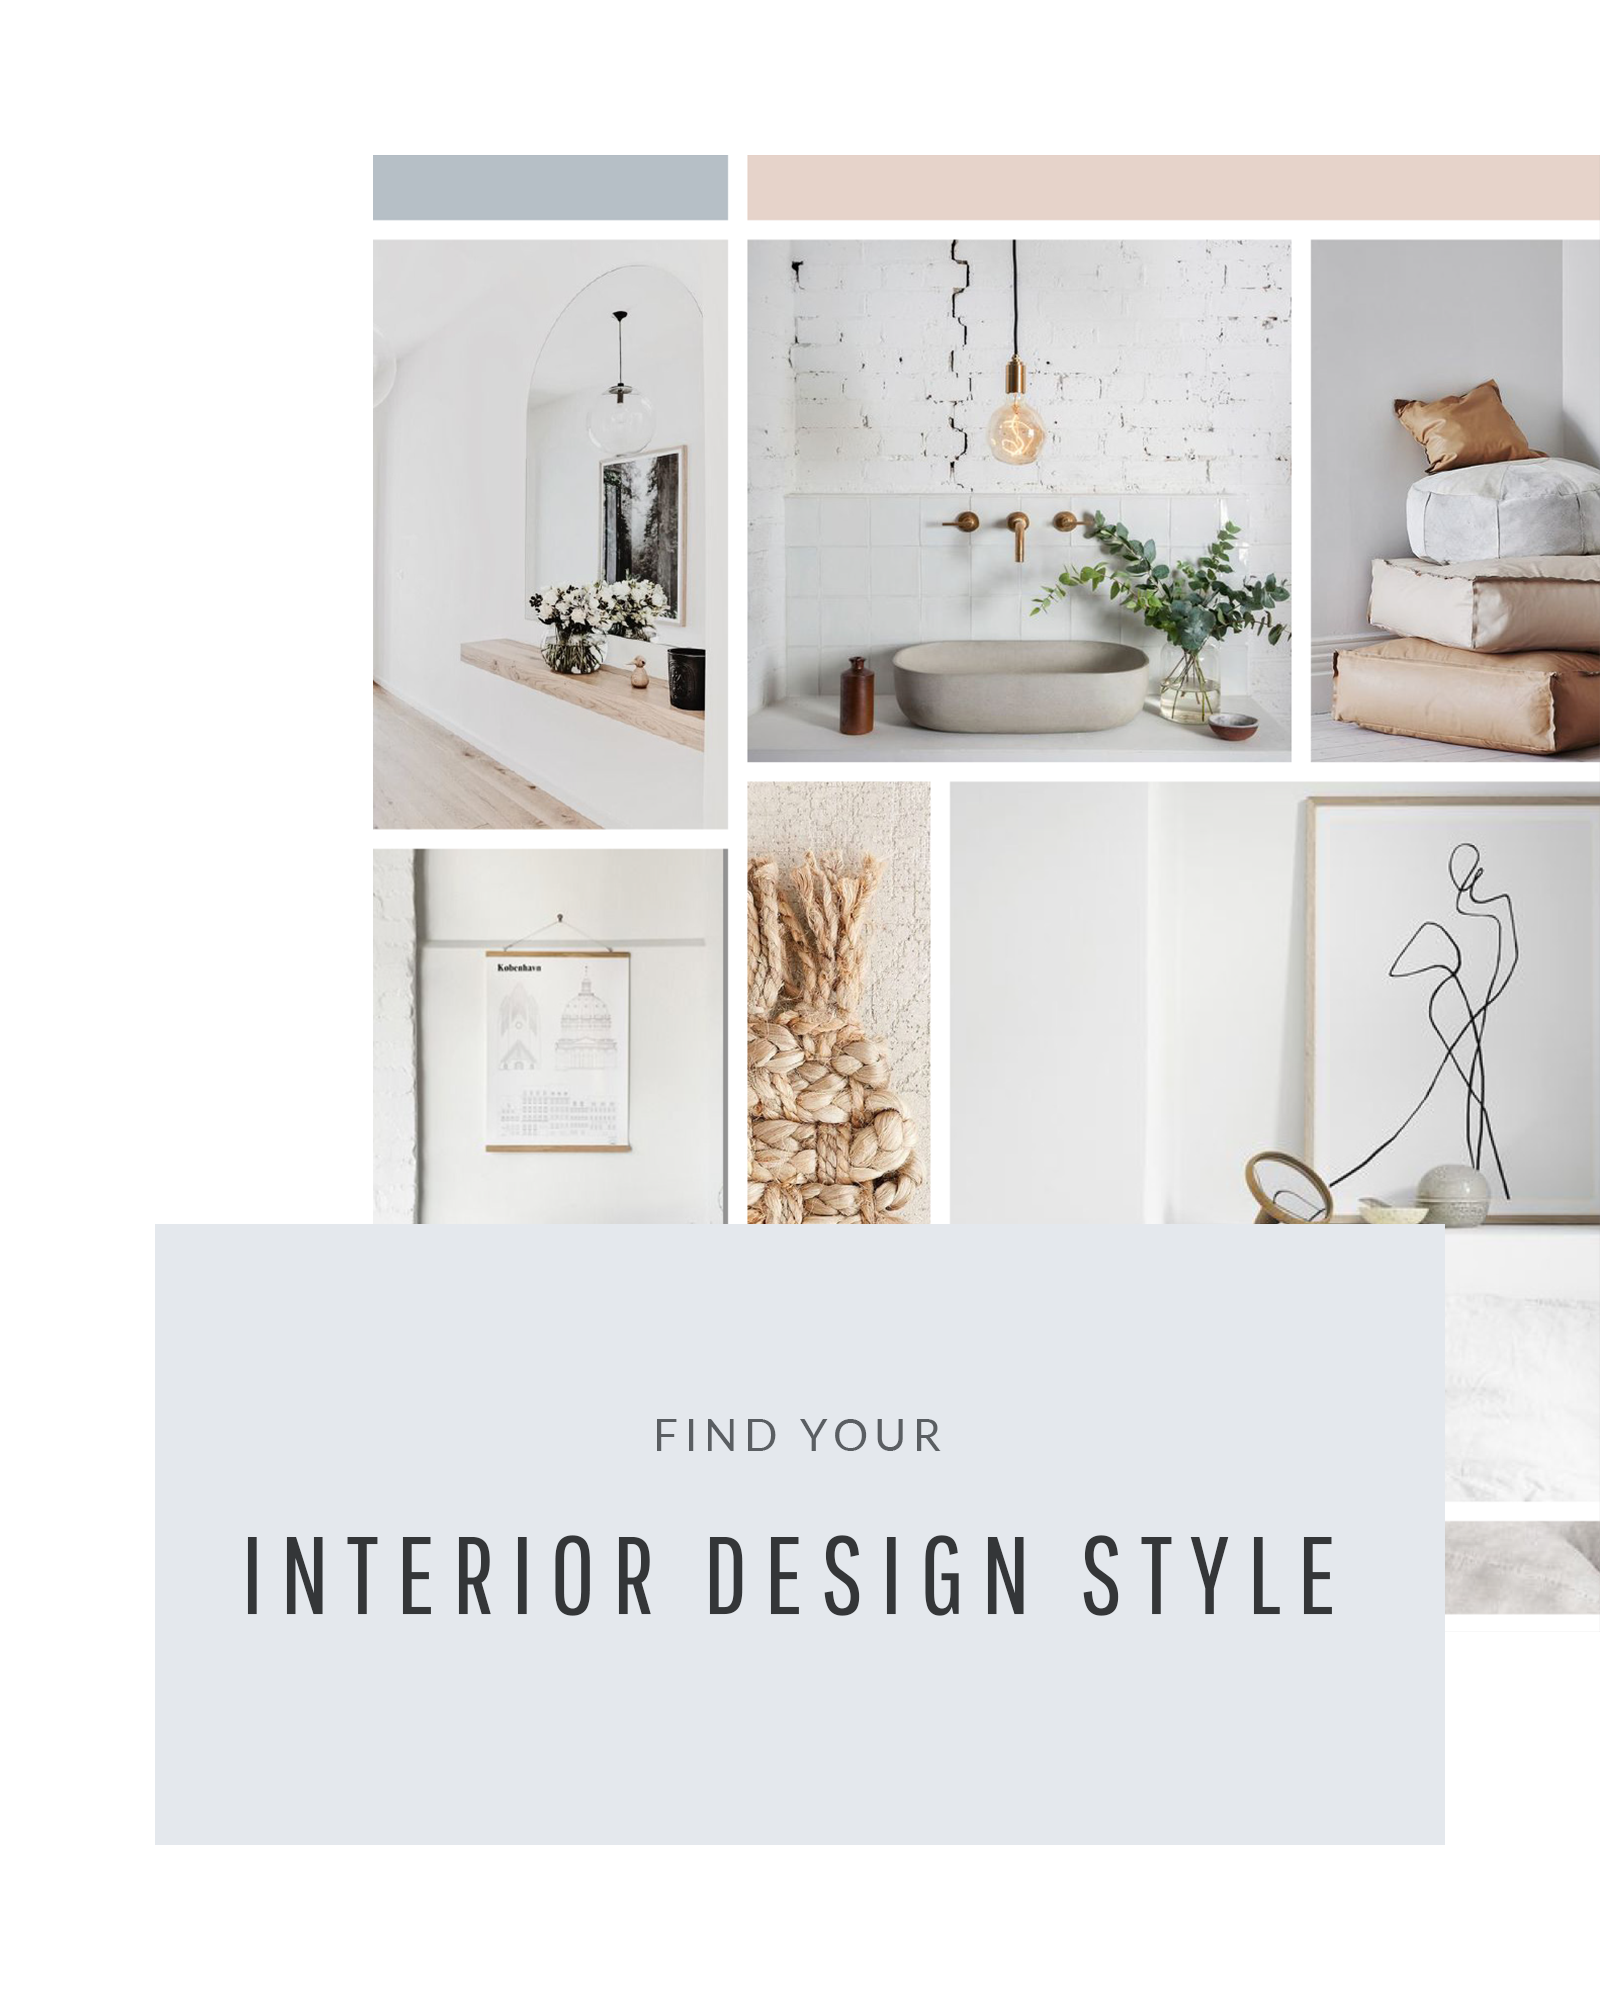 find-your-interior-design-style-dunne-interiors